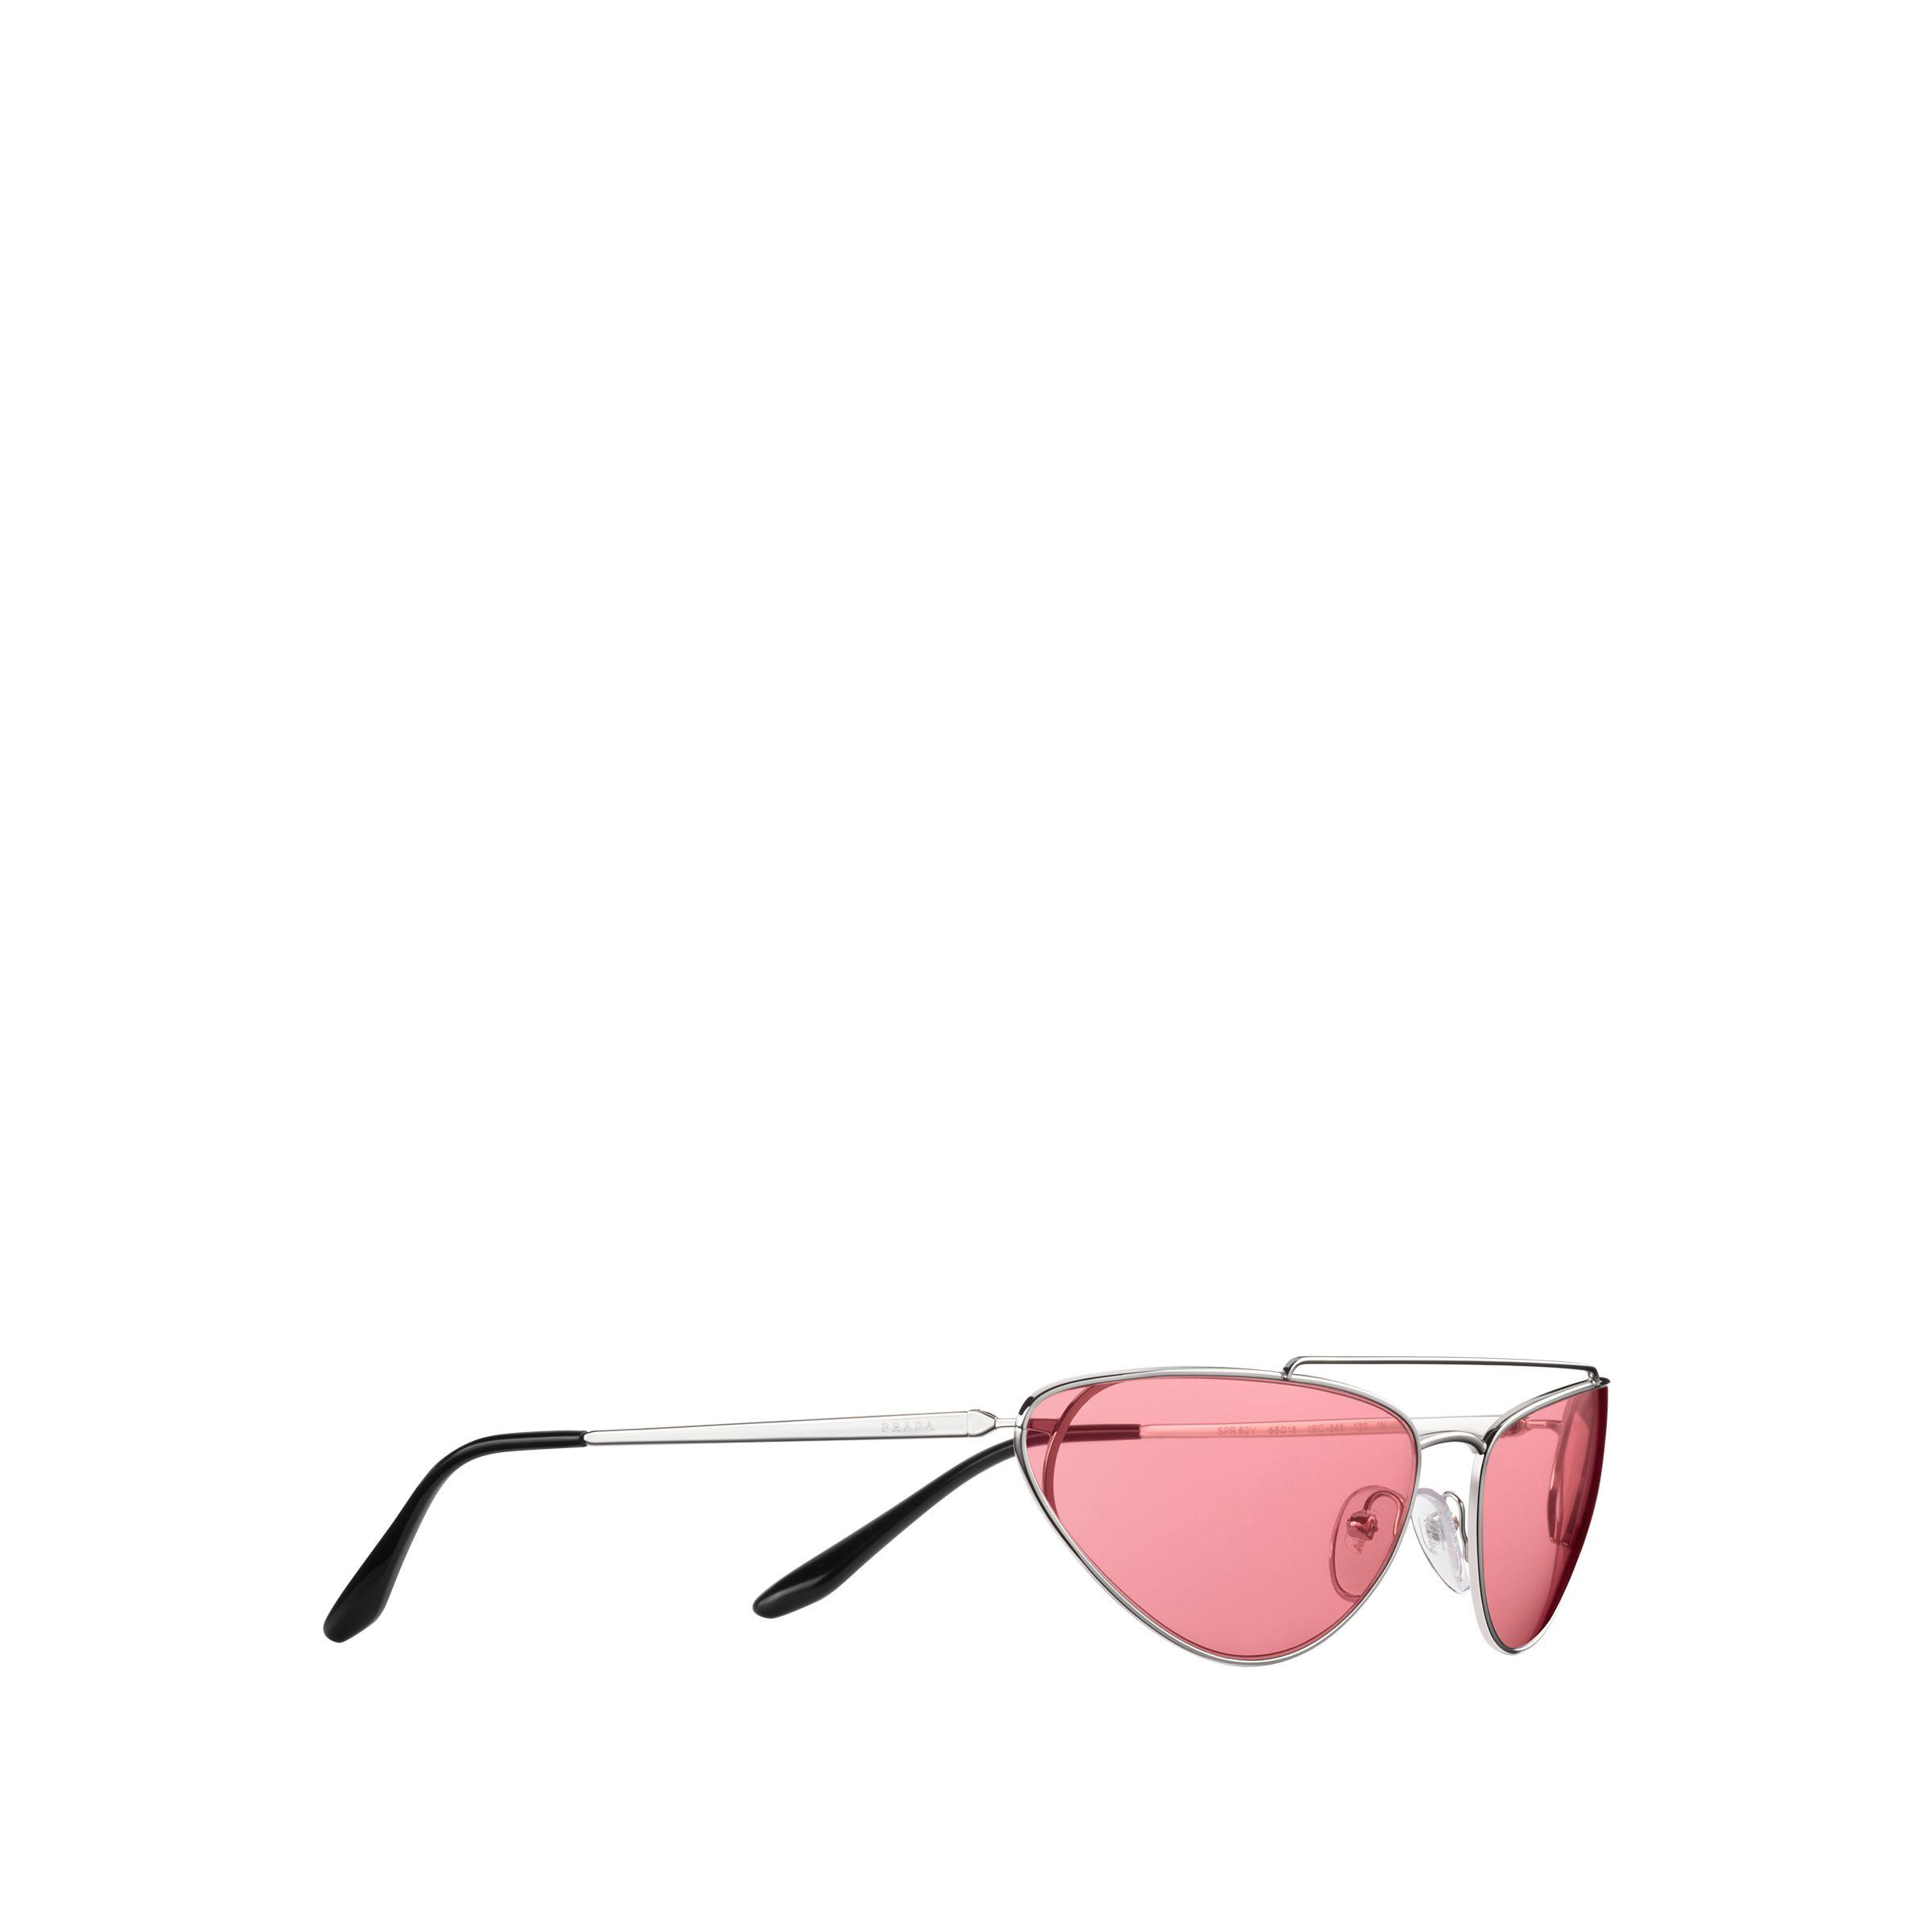 f0bb0042545 Prada - Pink Ultravox Sunglasses - Lyst. View fullscreen